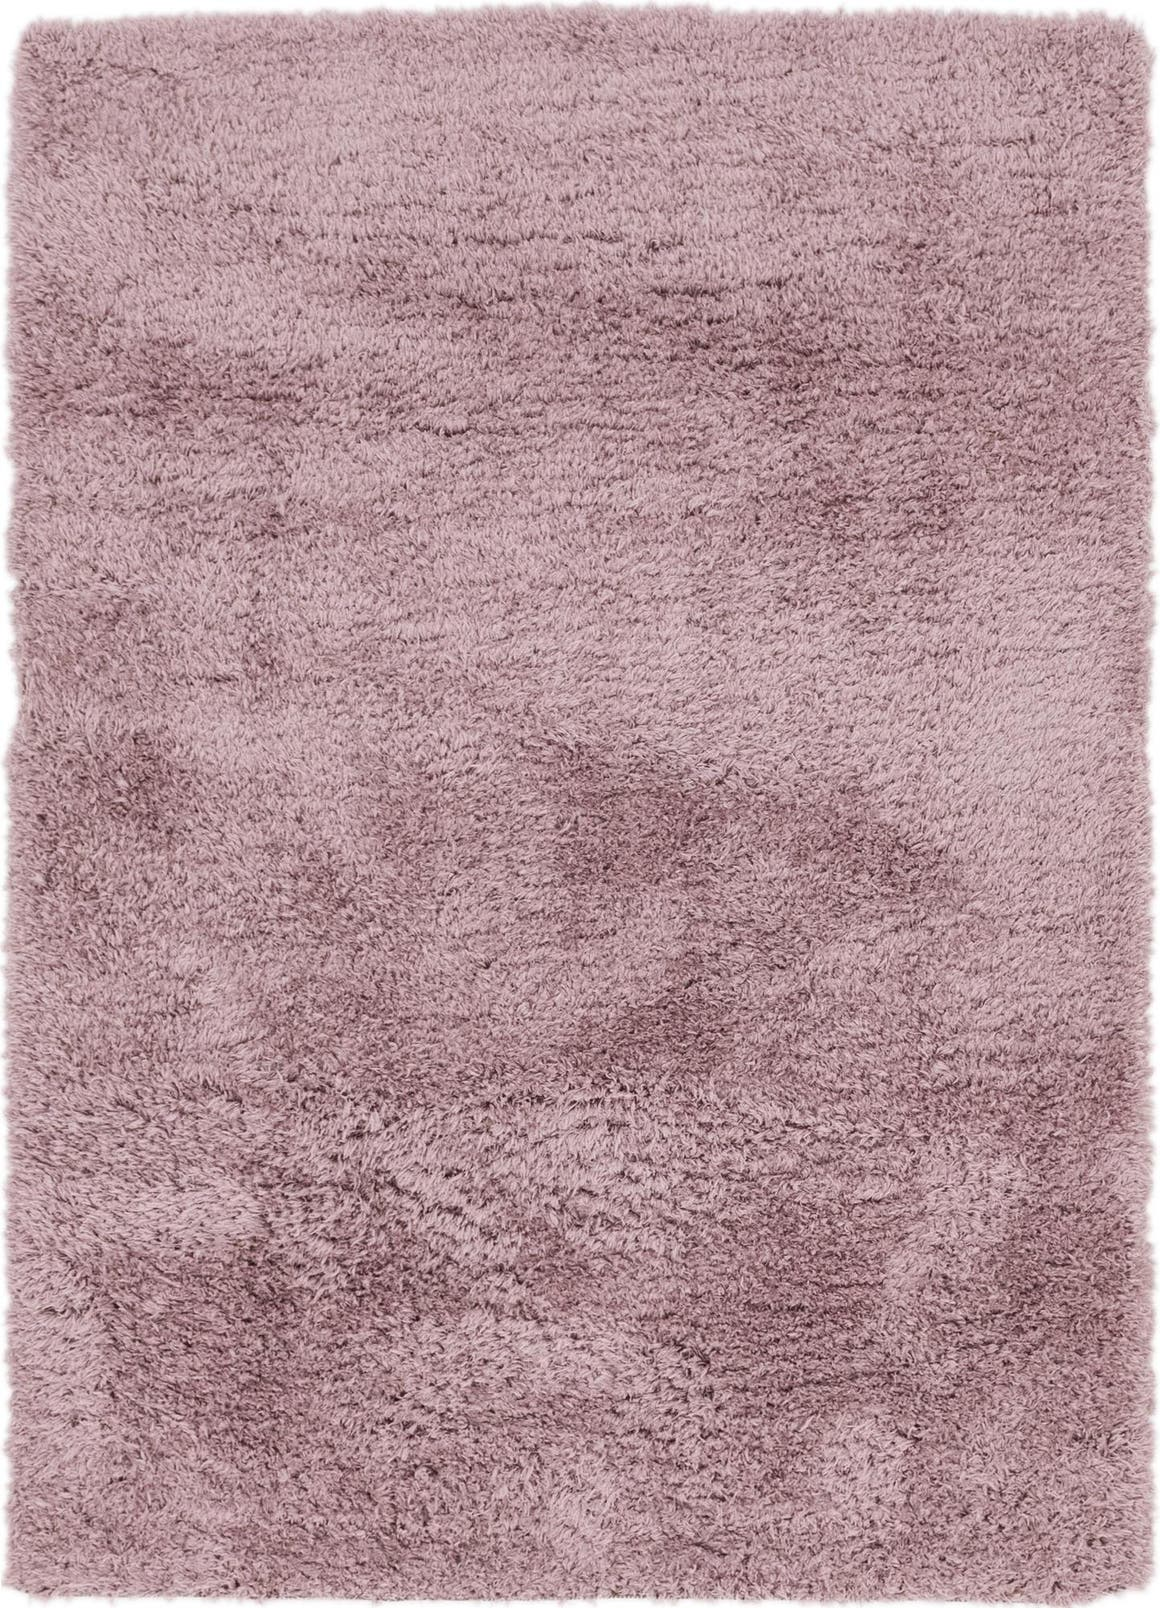 5' 6 x 7' 7 Luxe Solid Shag Rug main image